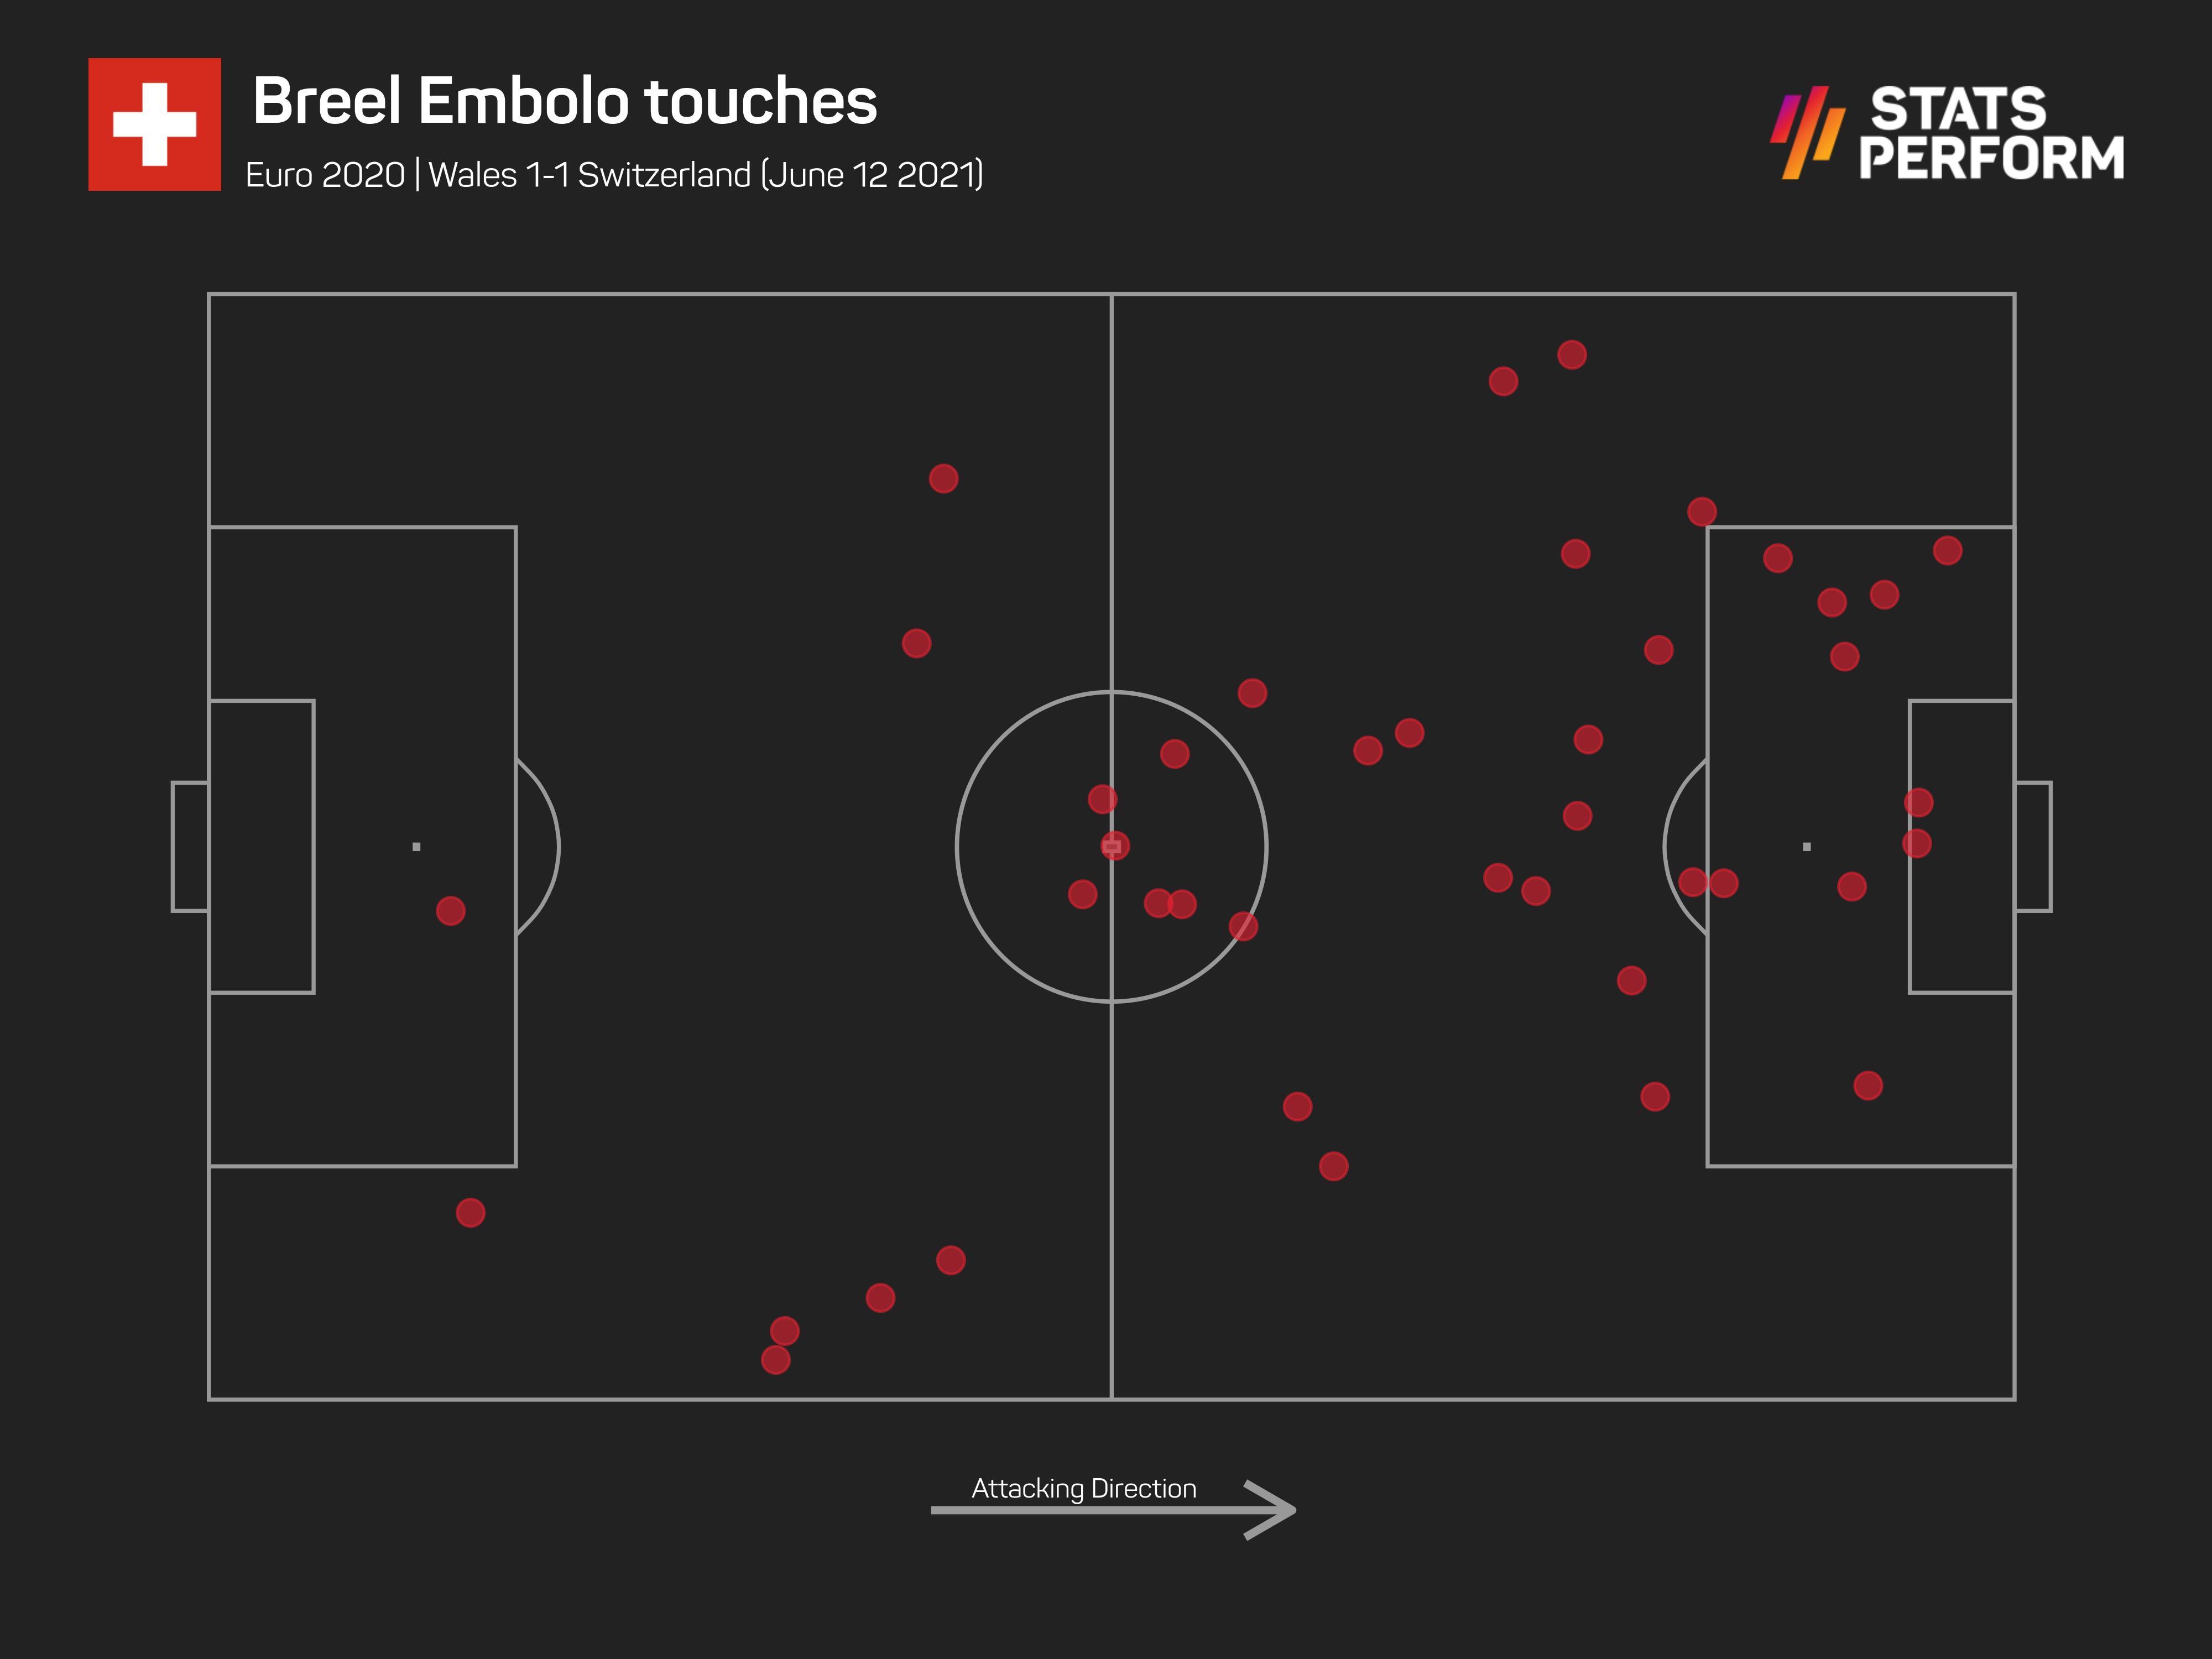 Breel Embolo touches against Wales